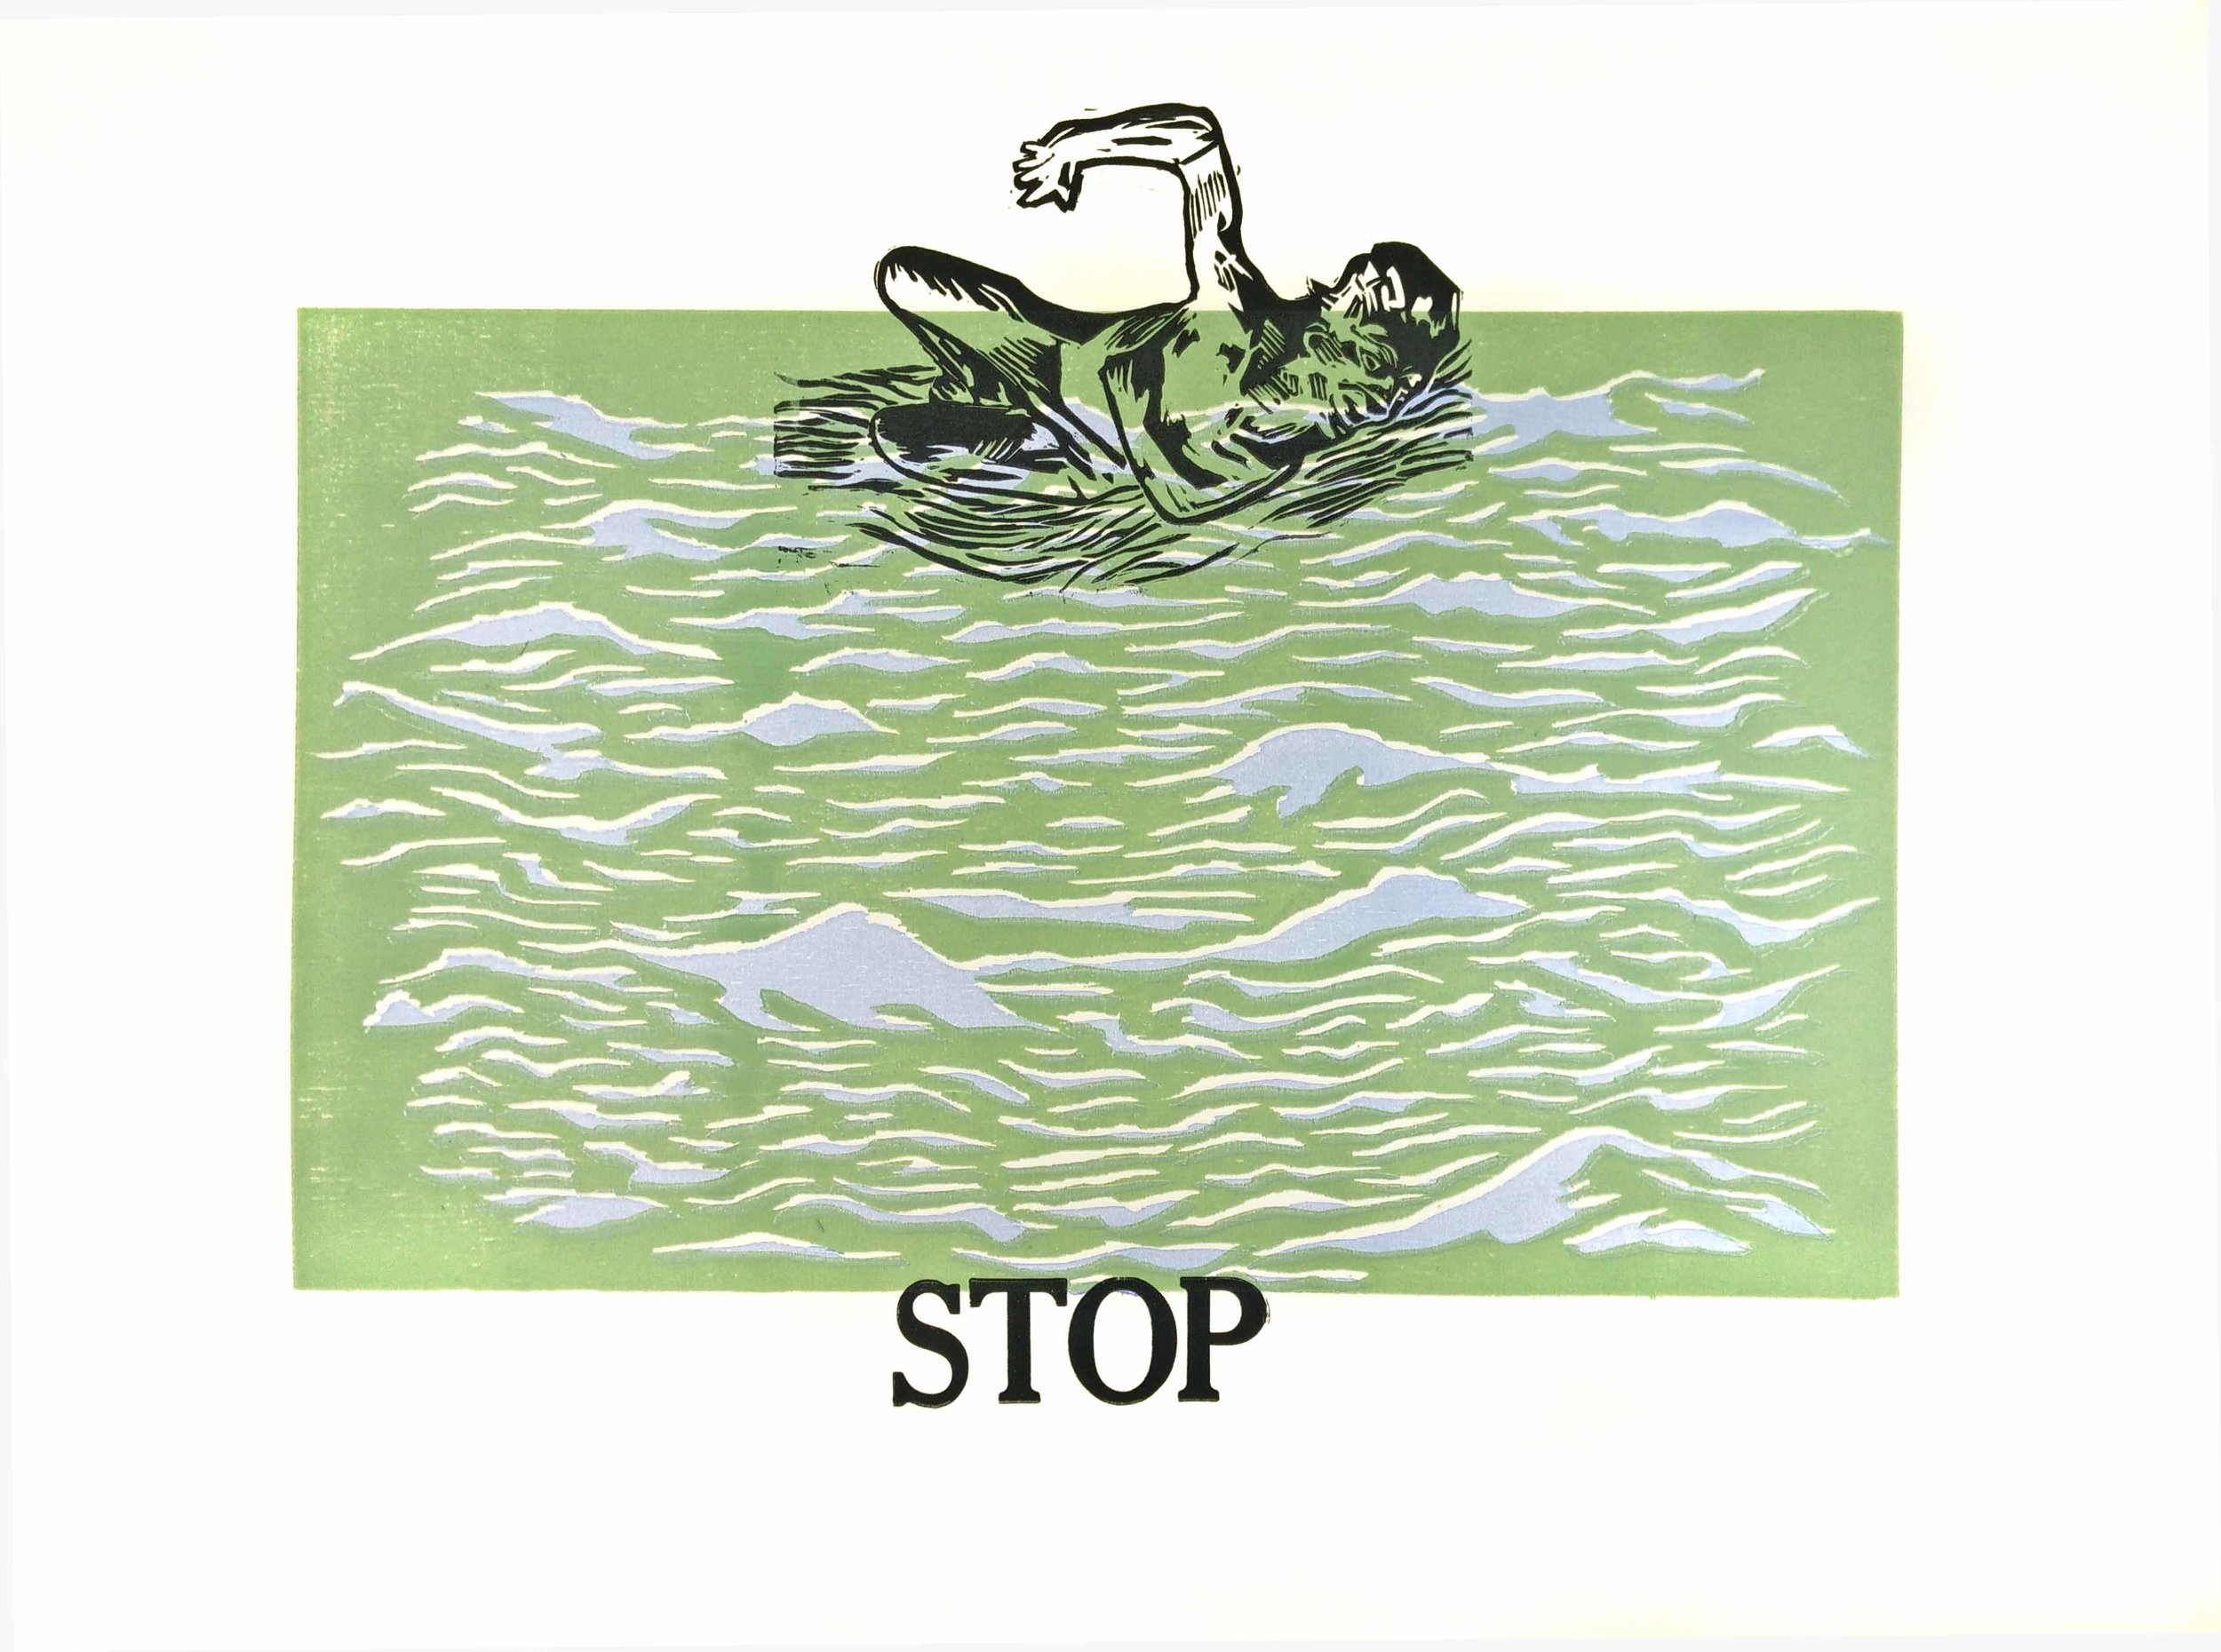 """If You Stop Swimming You Will Sink, Part I of III Wood Block Color 23 x 29"""" 2017 $350/ Set of Three $900"""